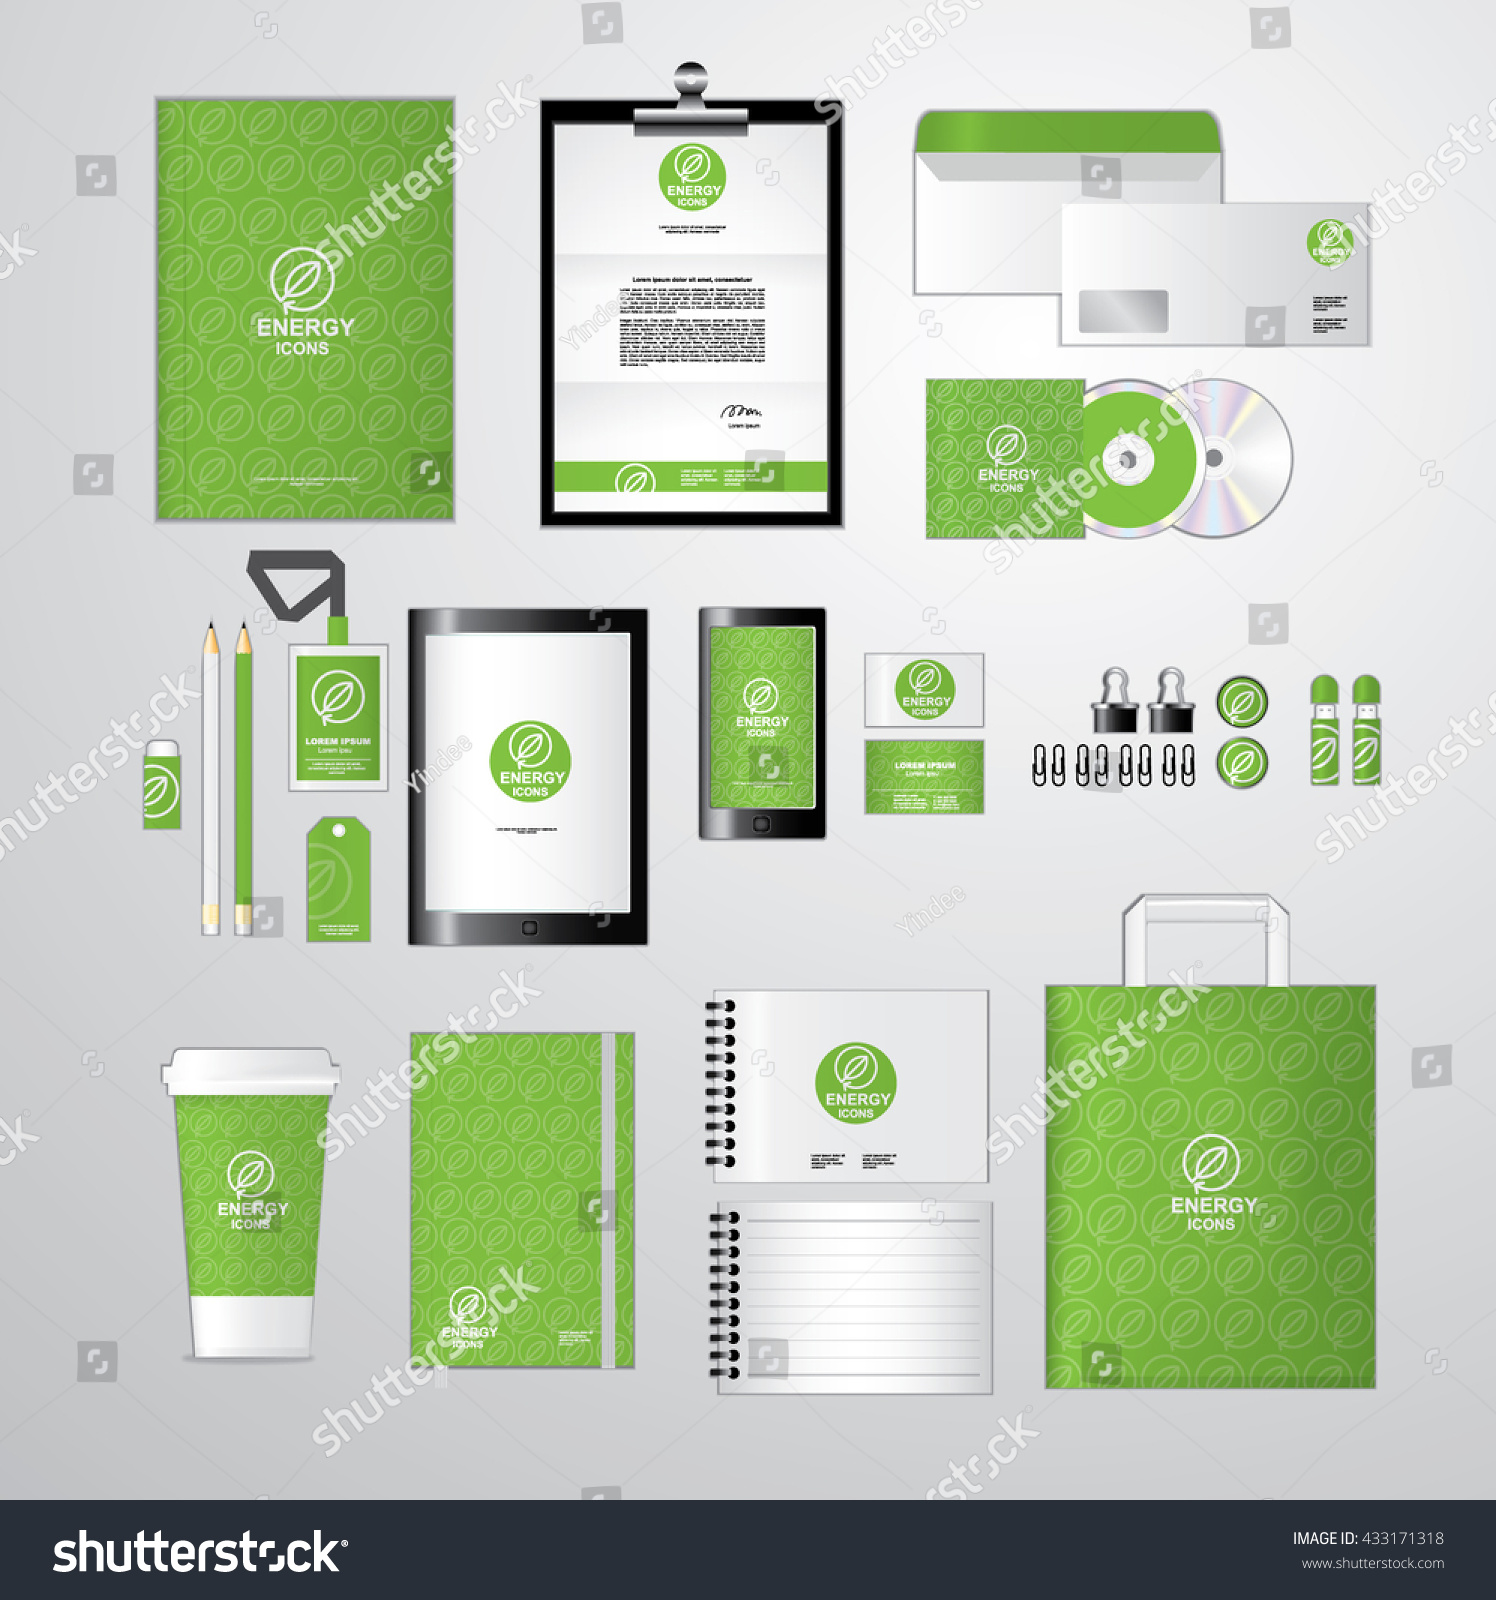 Green Corporate Identity Template Your Business Stock Vector ...